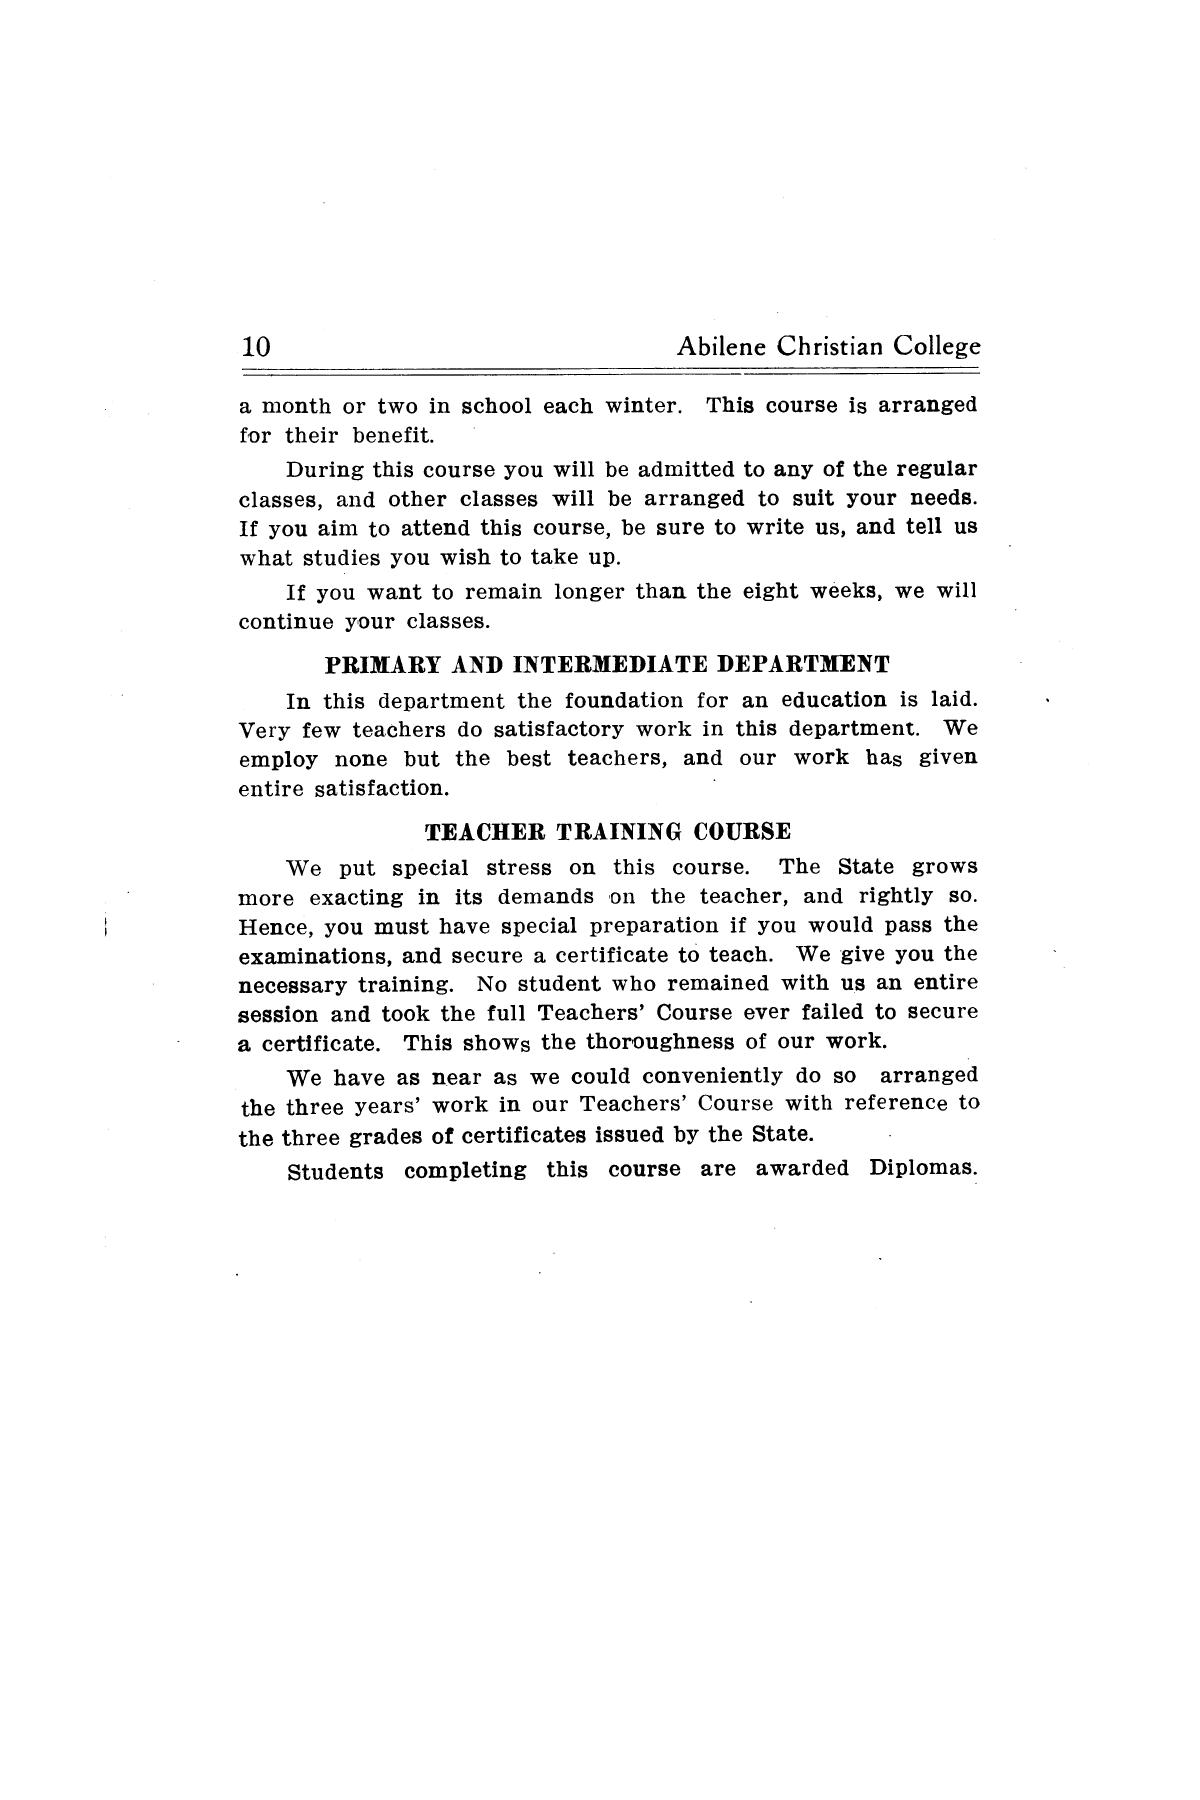 Catalog of Abilene Christian College, 1910-1911                                                                                                      [Sequence #]: 12 of 25